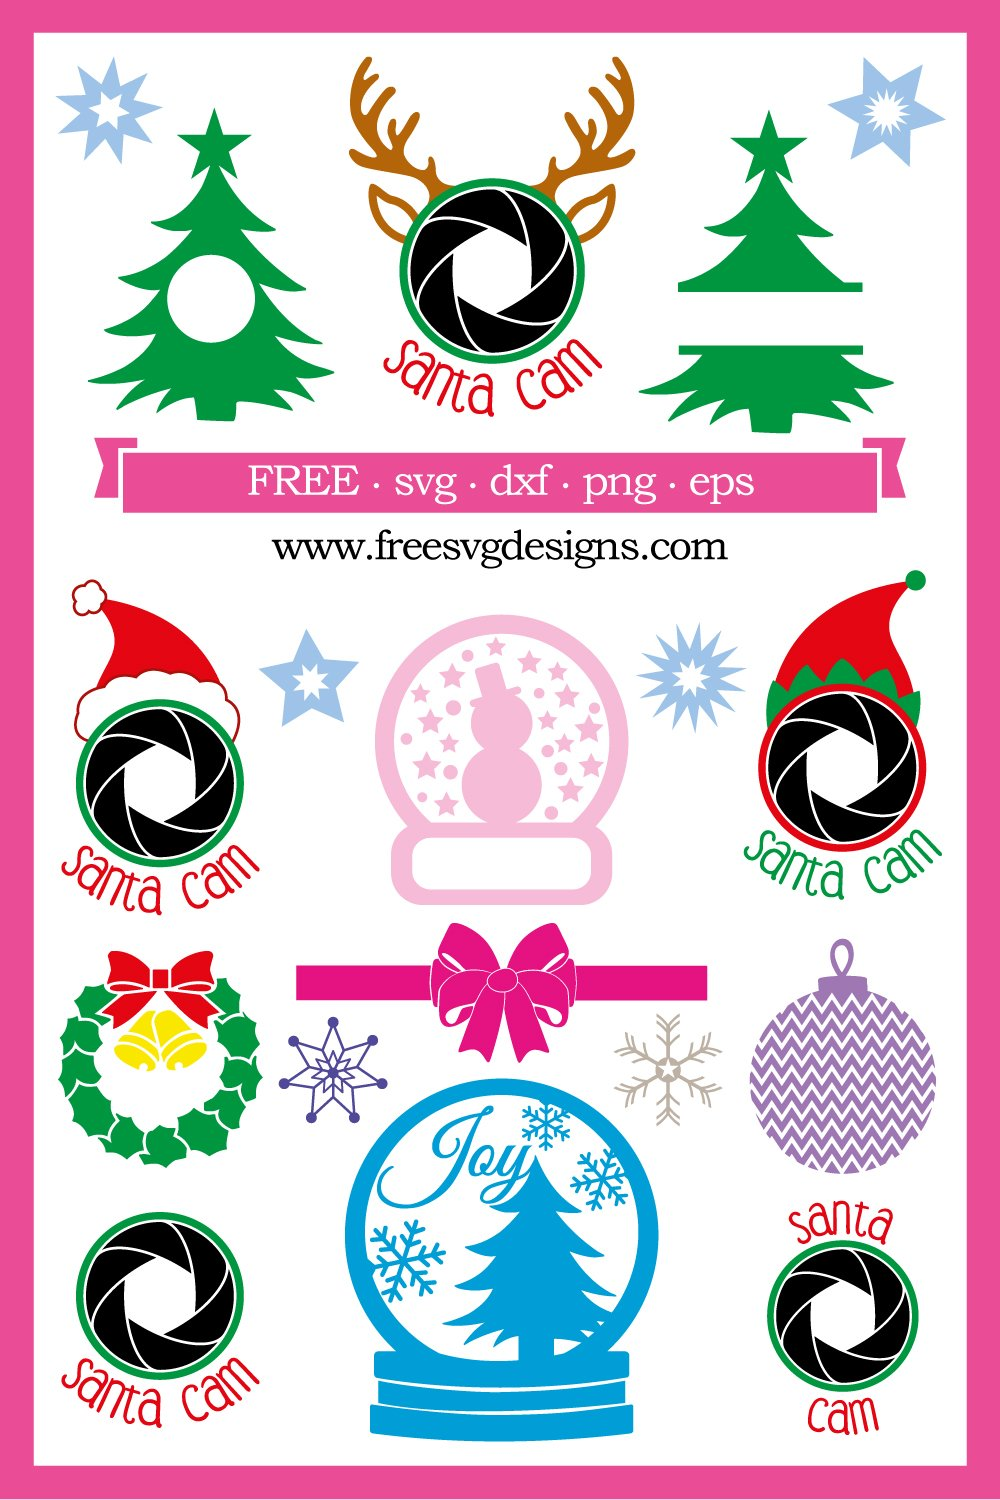 Free Christmas Designs For Your Personal Cutting Projects